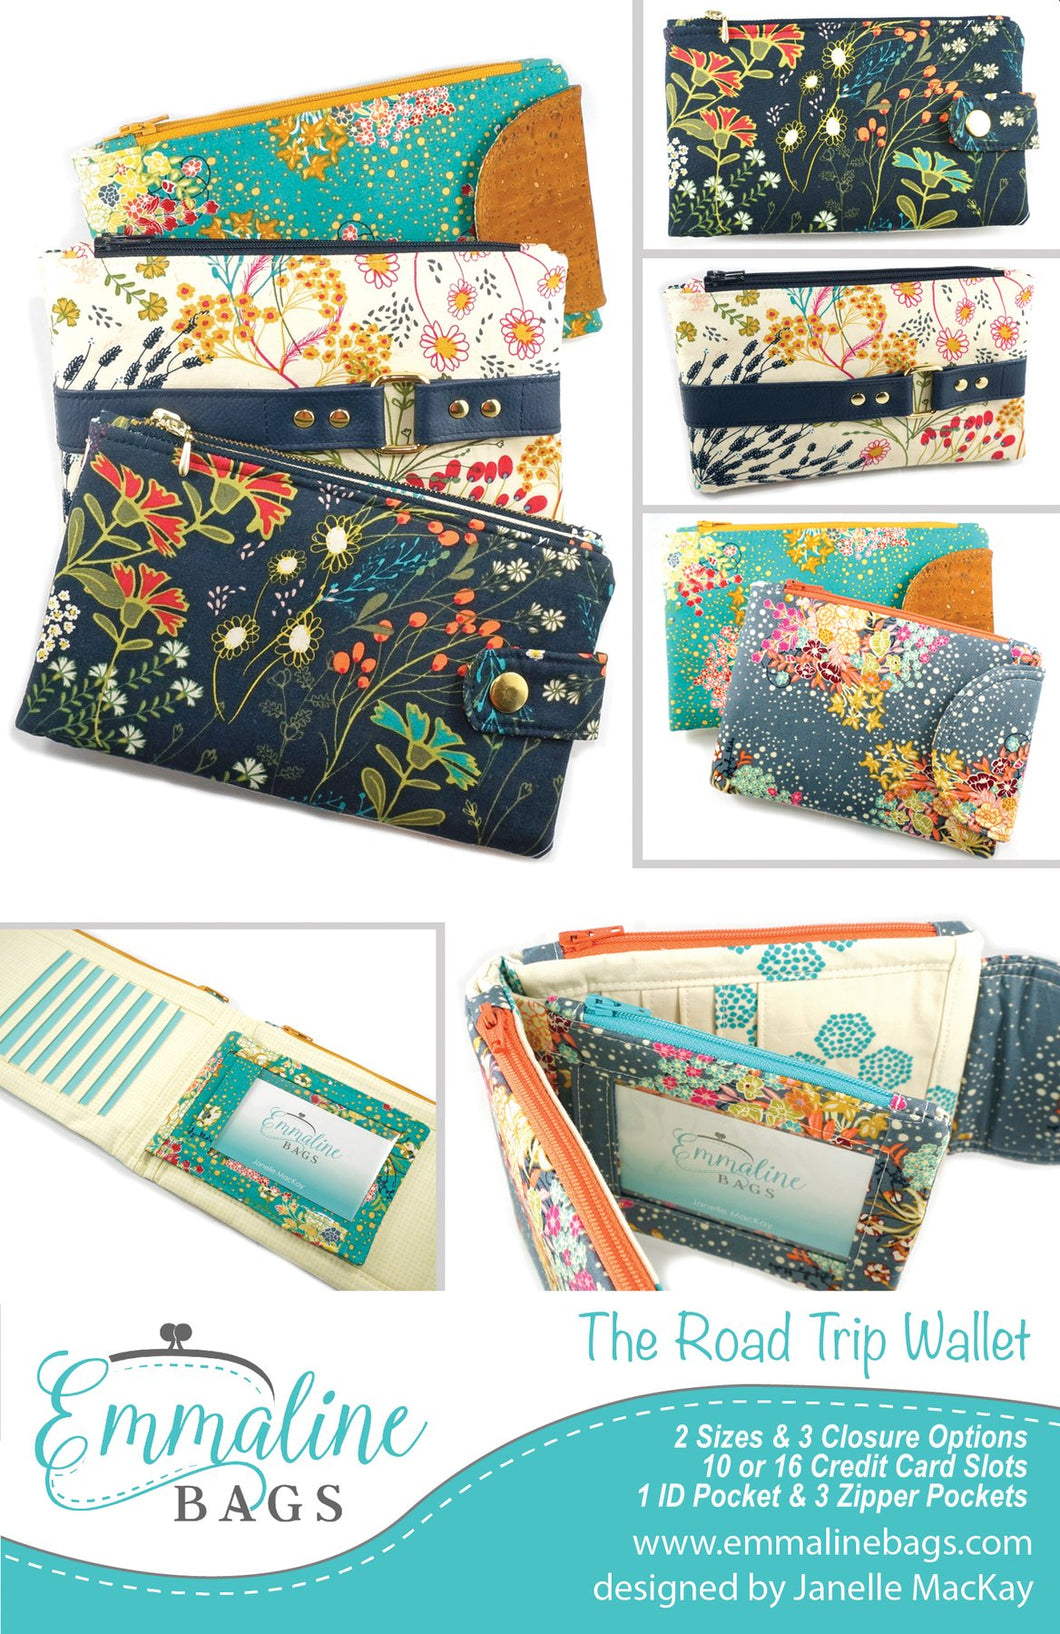 The Road Trip Wallet Pattern by Emmaline Bags - Front Cover